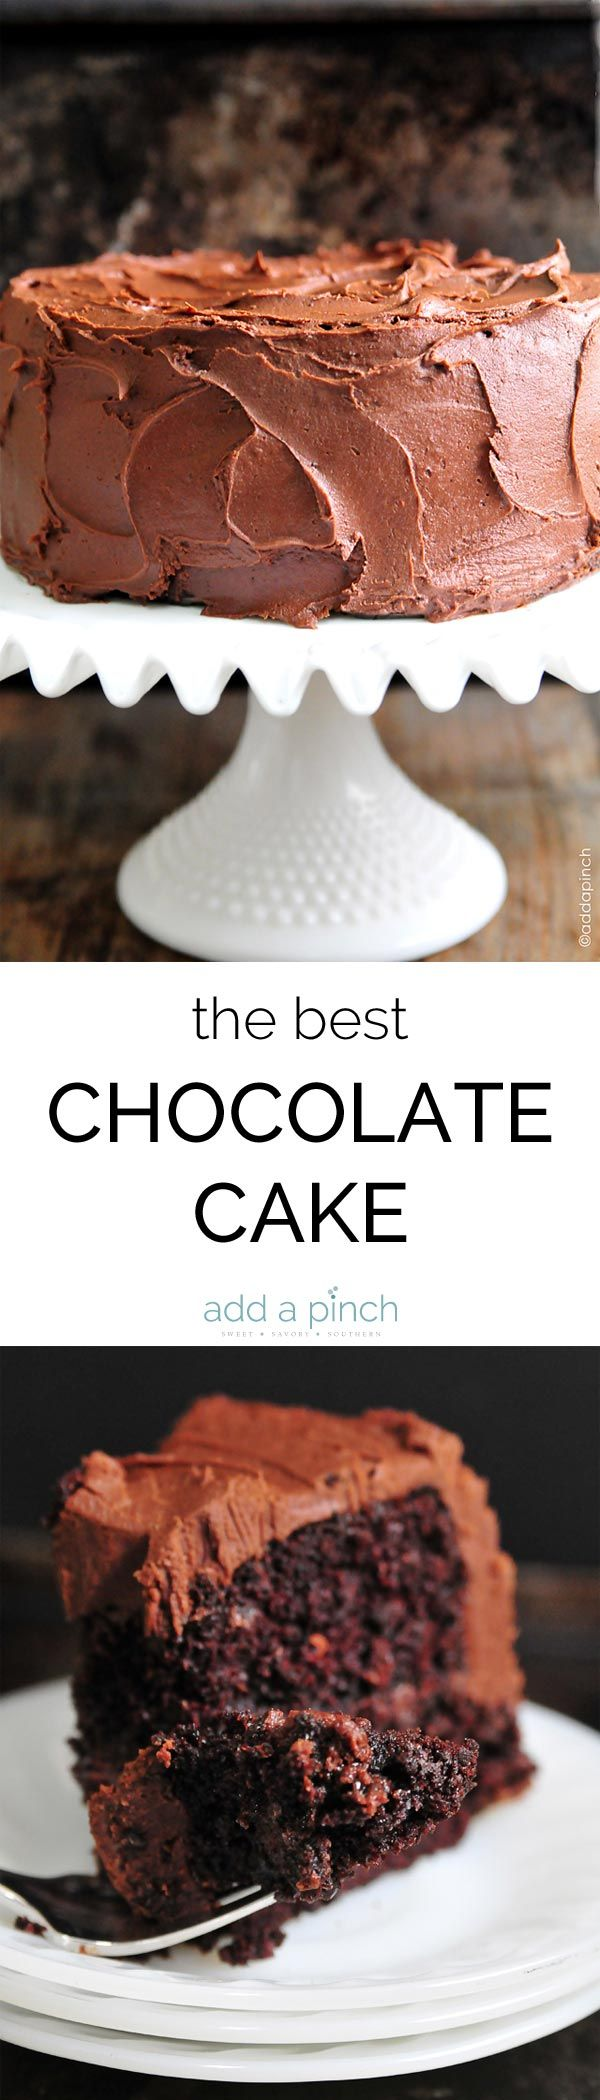 The Best Chocolate Cake Recipe Ever. The Best Chocolate Cake recipe with…